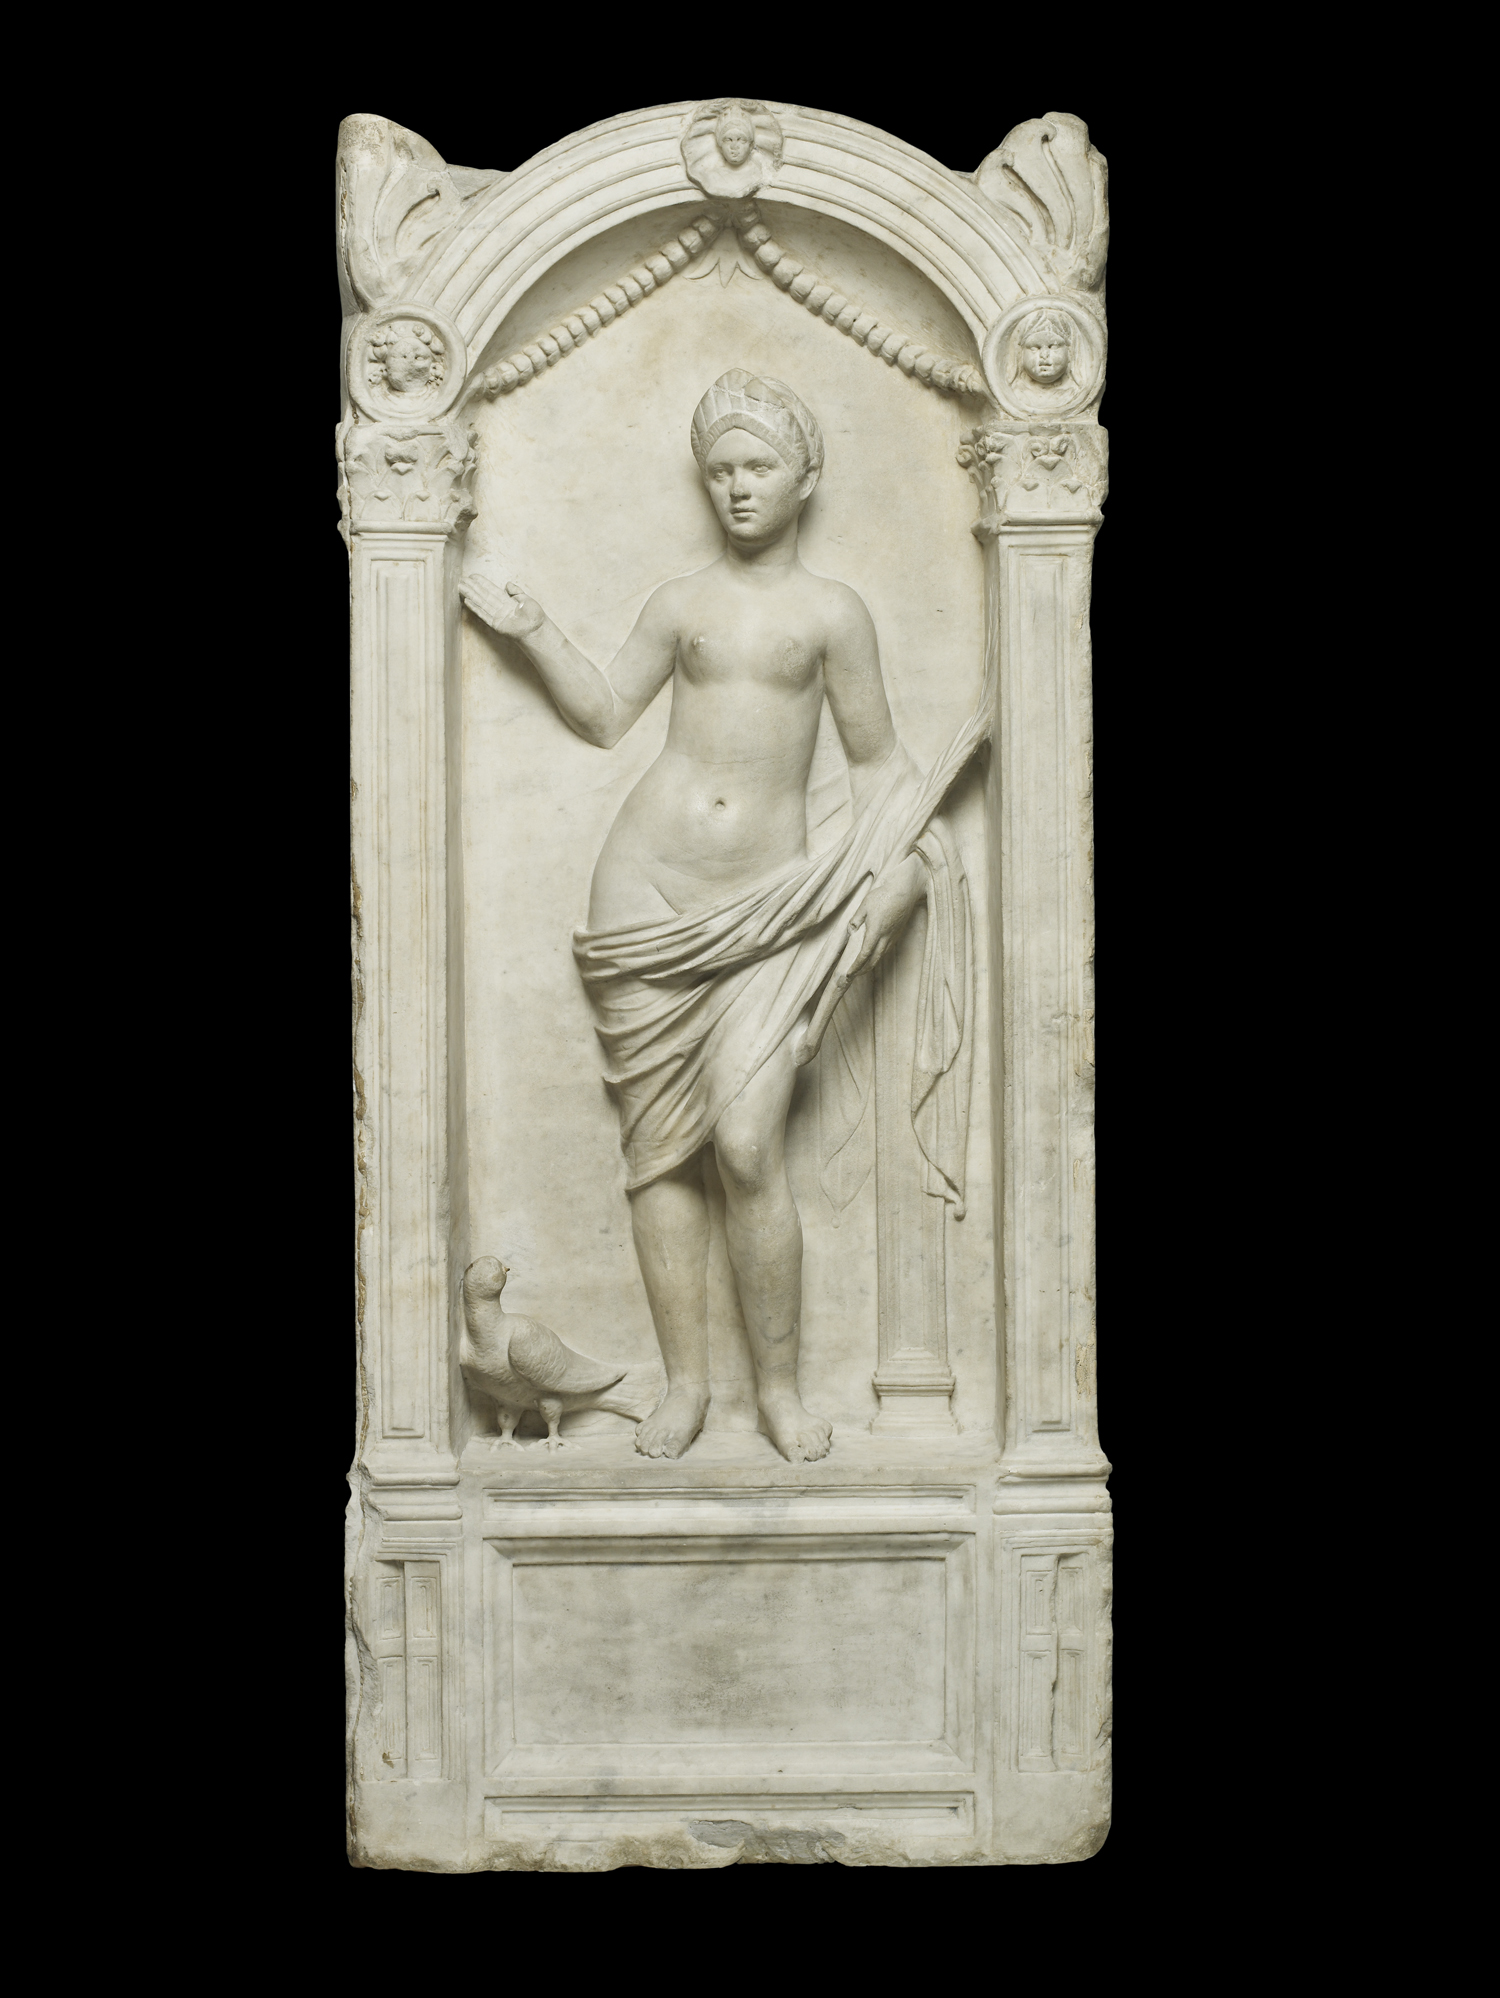 Marble relief from a tomb with a portrait of a woman as victorious Venus. Roman, c. AD 100-120.